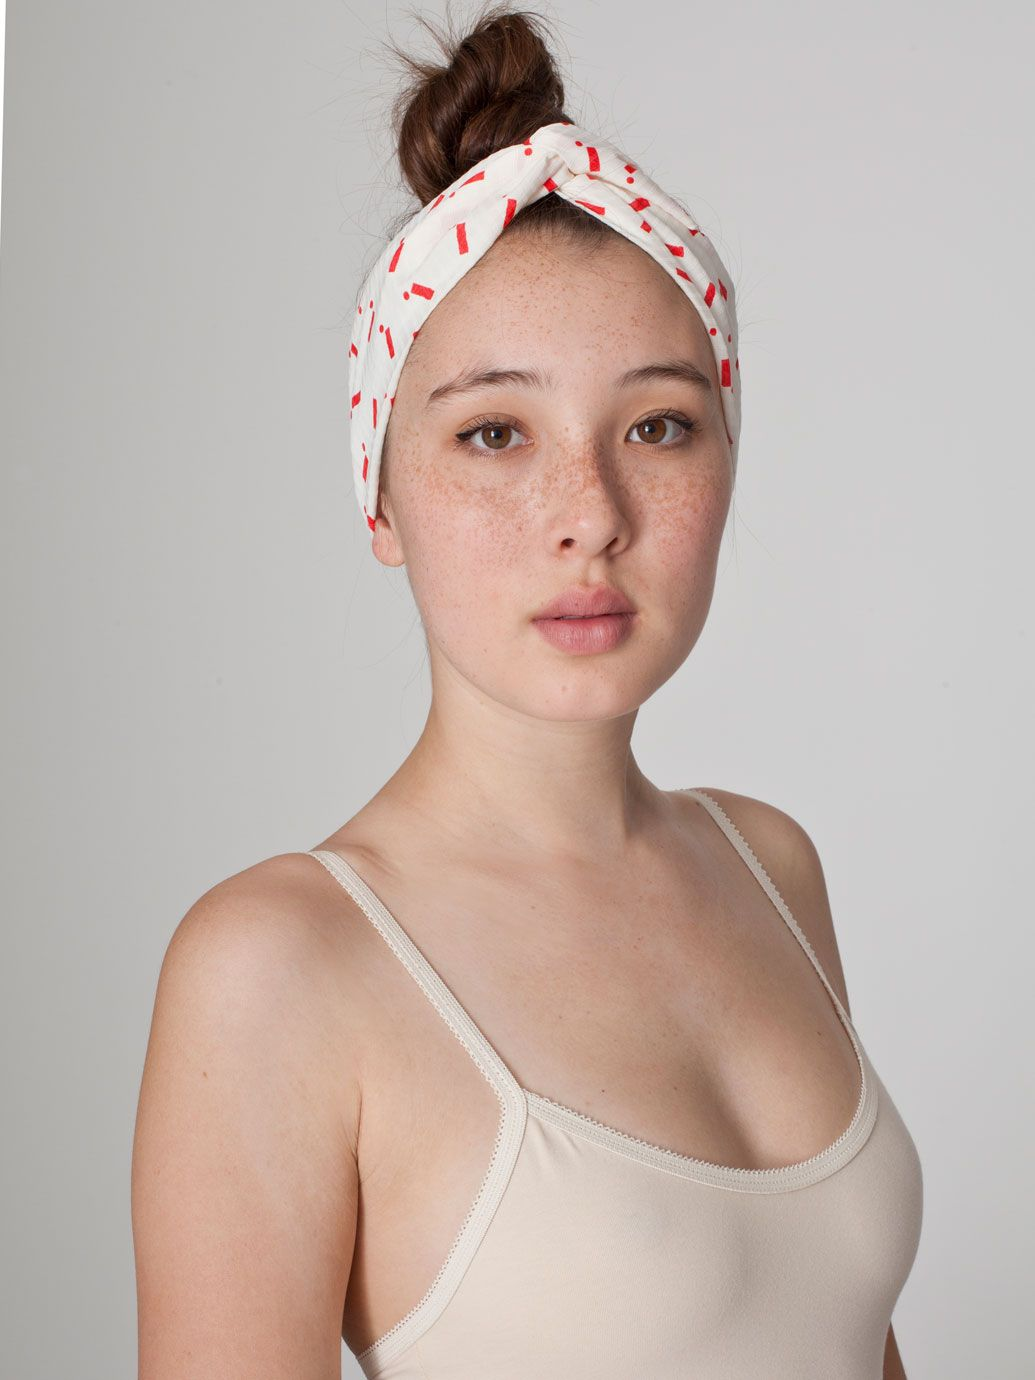 Fashion week How to american wear apparel headband for girls